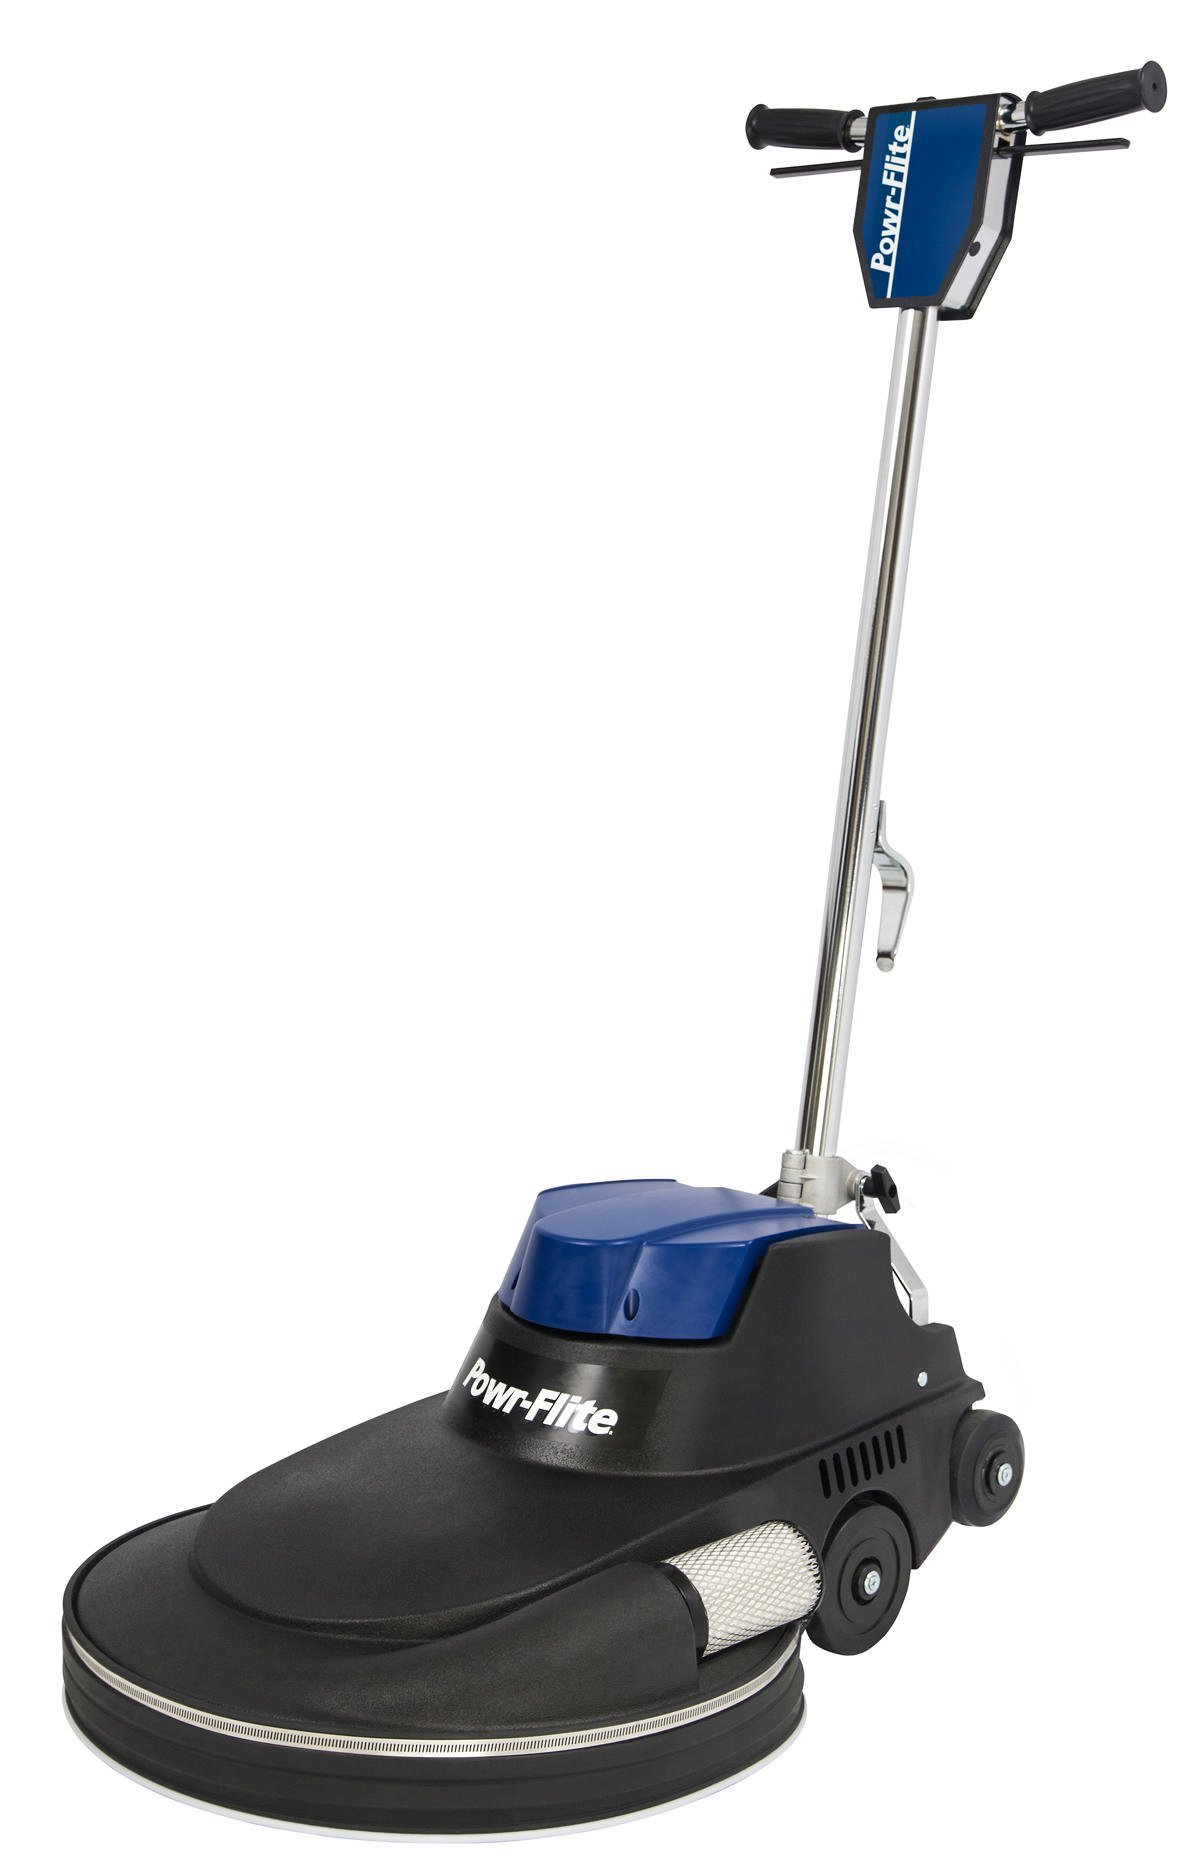 Powr-Flite NM2000DC Millennium Edition Electric Burnisher with Dust Control Filtration, 2000 rpm, 20'', 49'' Height, 19'' Length